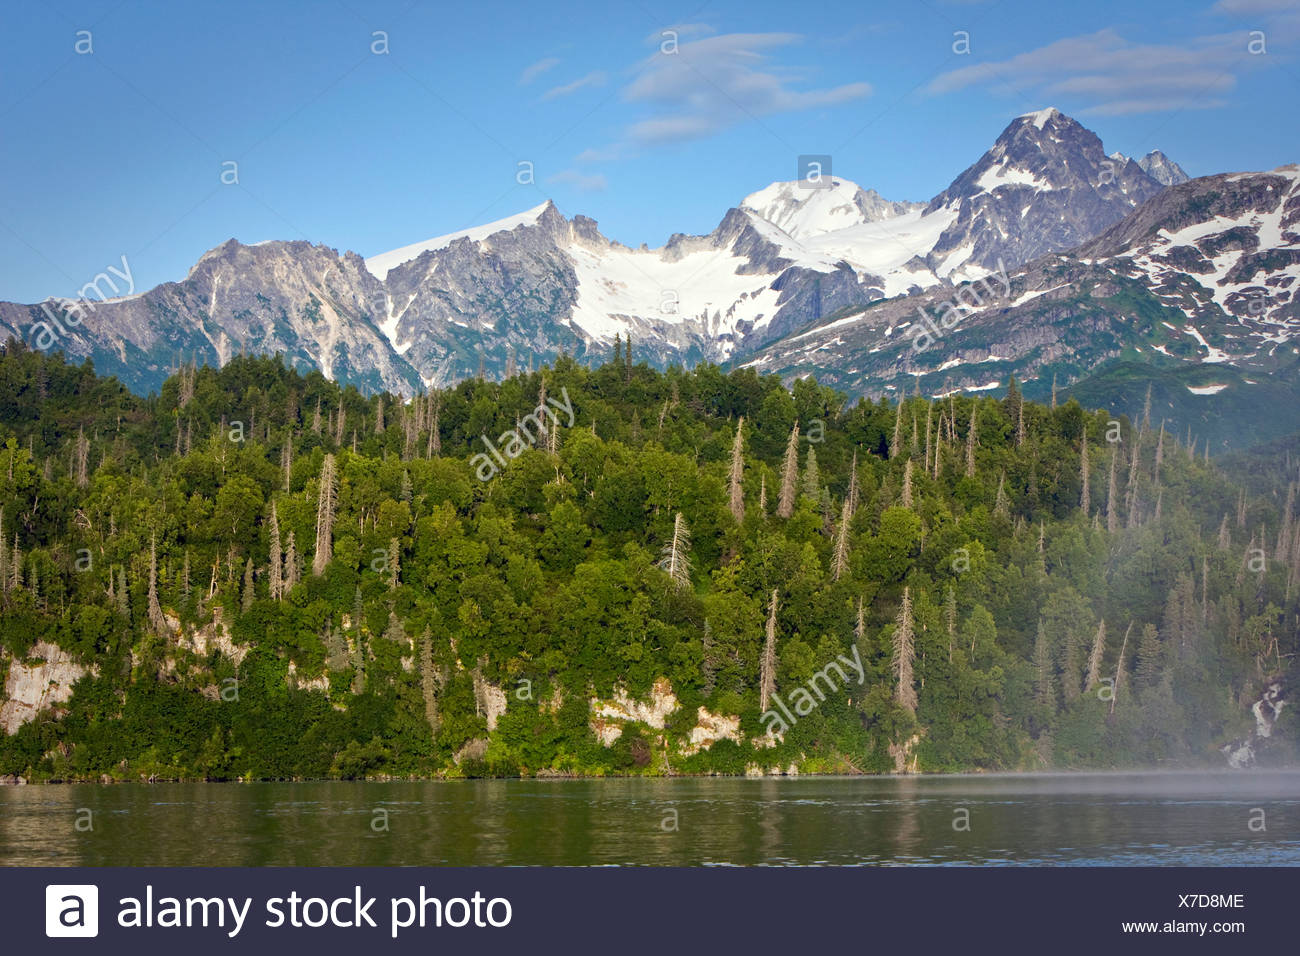 Scenic view of Big River Lakes and Chigmit  Mountains of the Alueutian Range during Summer in Southcentral Alaska - Stock Image